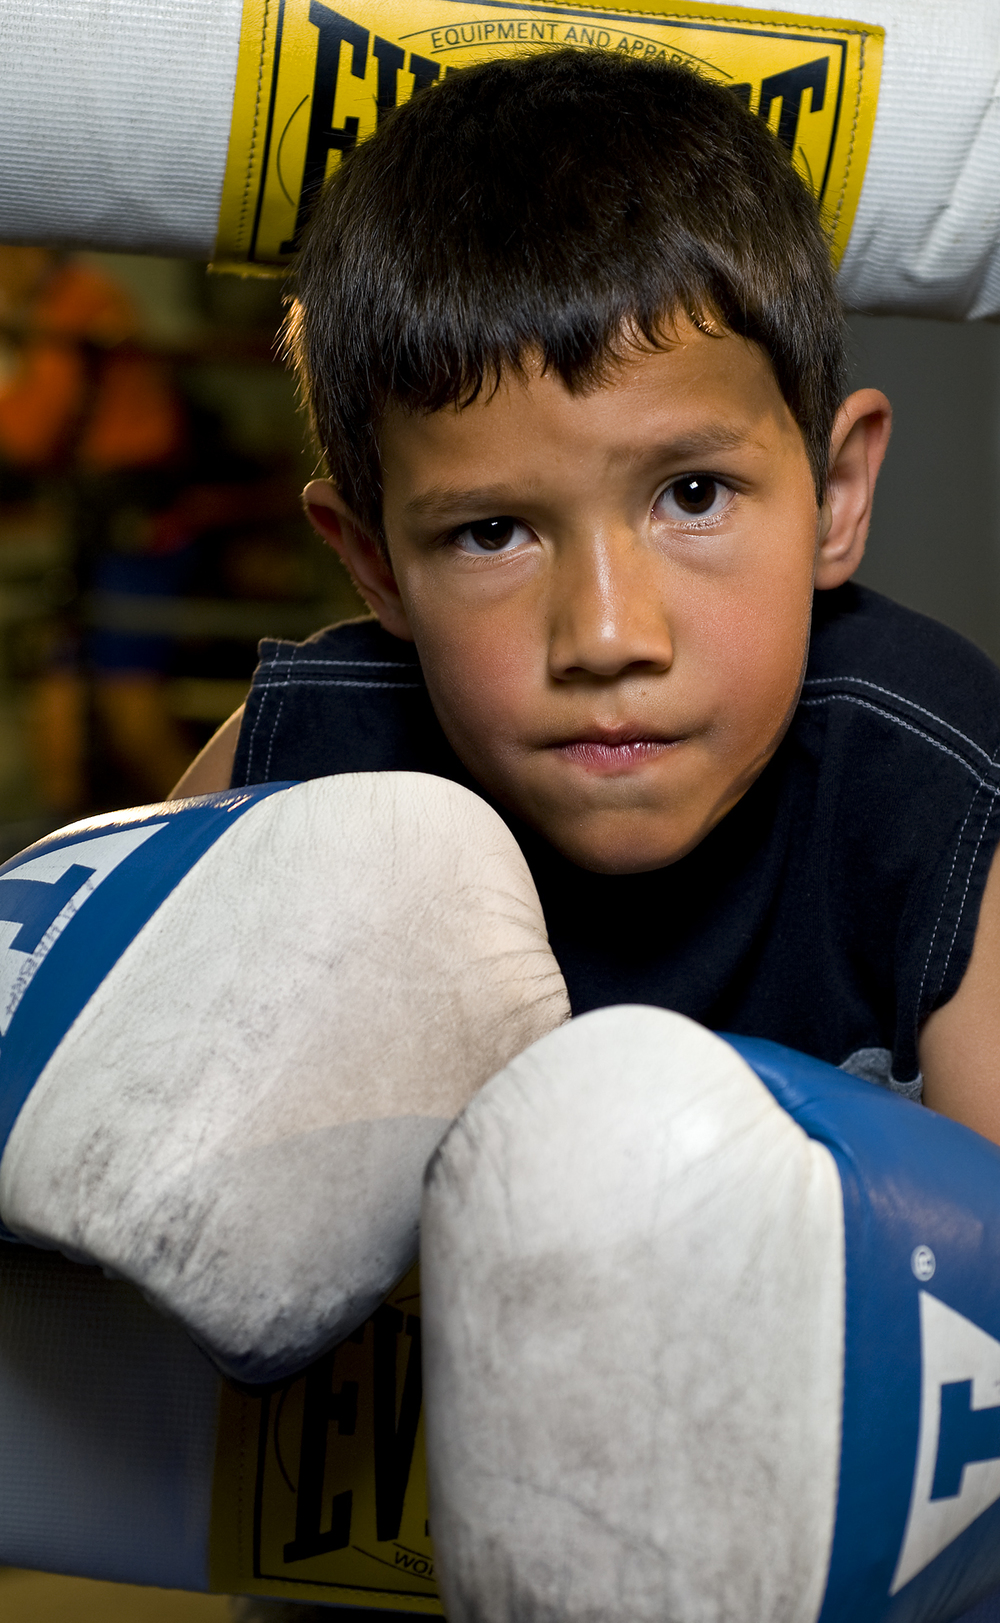 Julian Janqcua, 8, of La Habra Calif. comes to practice boxing at La Habra Boxing Club with his brothers several times a week. The La Habra Boxing Club was started as a crime diversion program in 1981 and continues to allow youths to constructively channel their energy into sport.